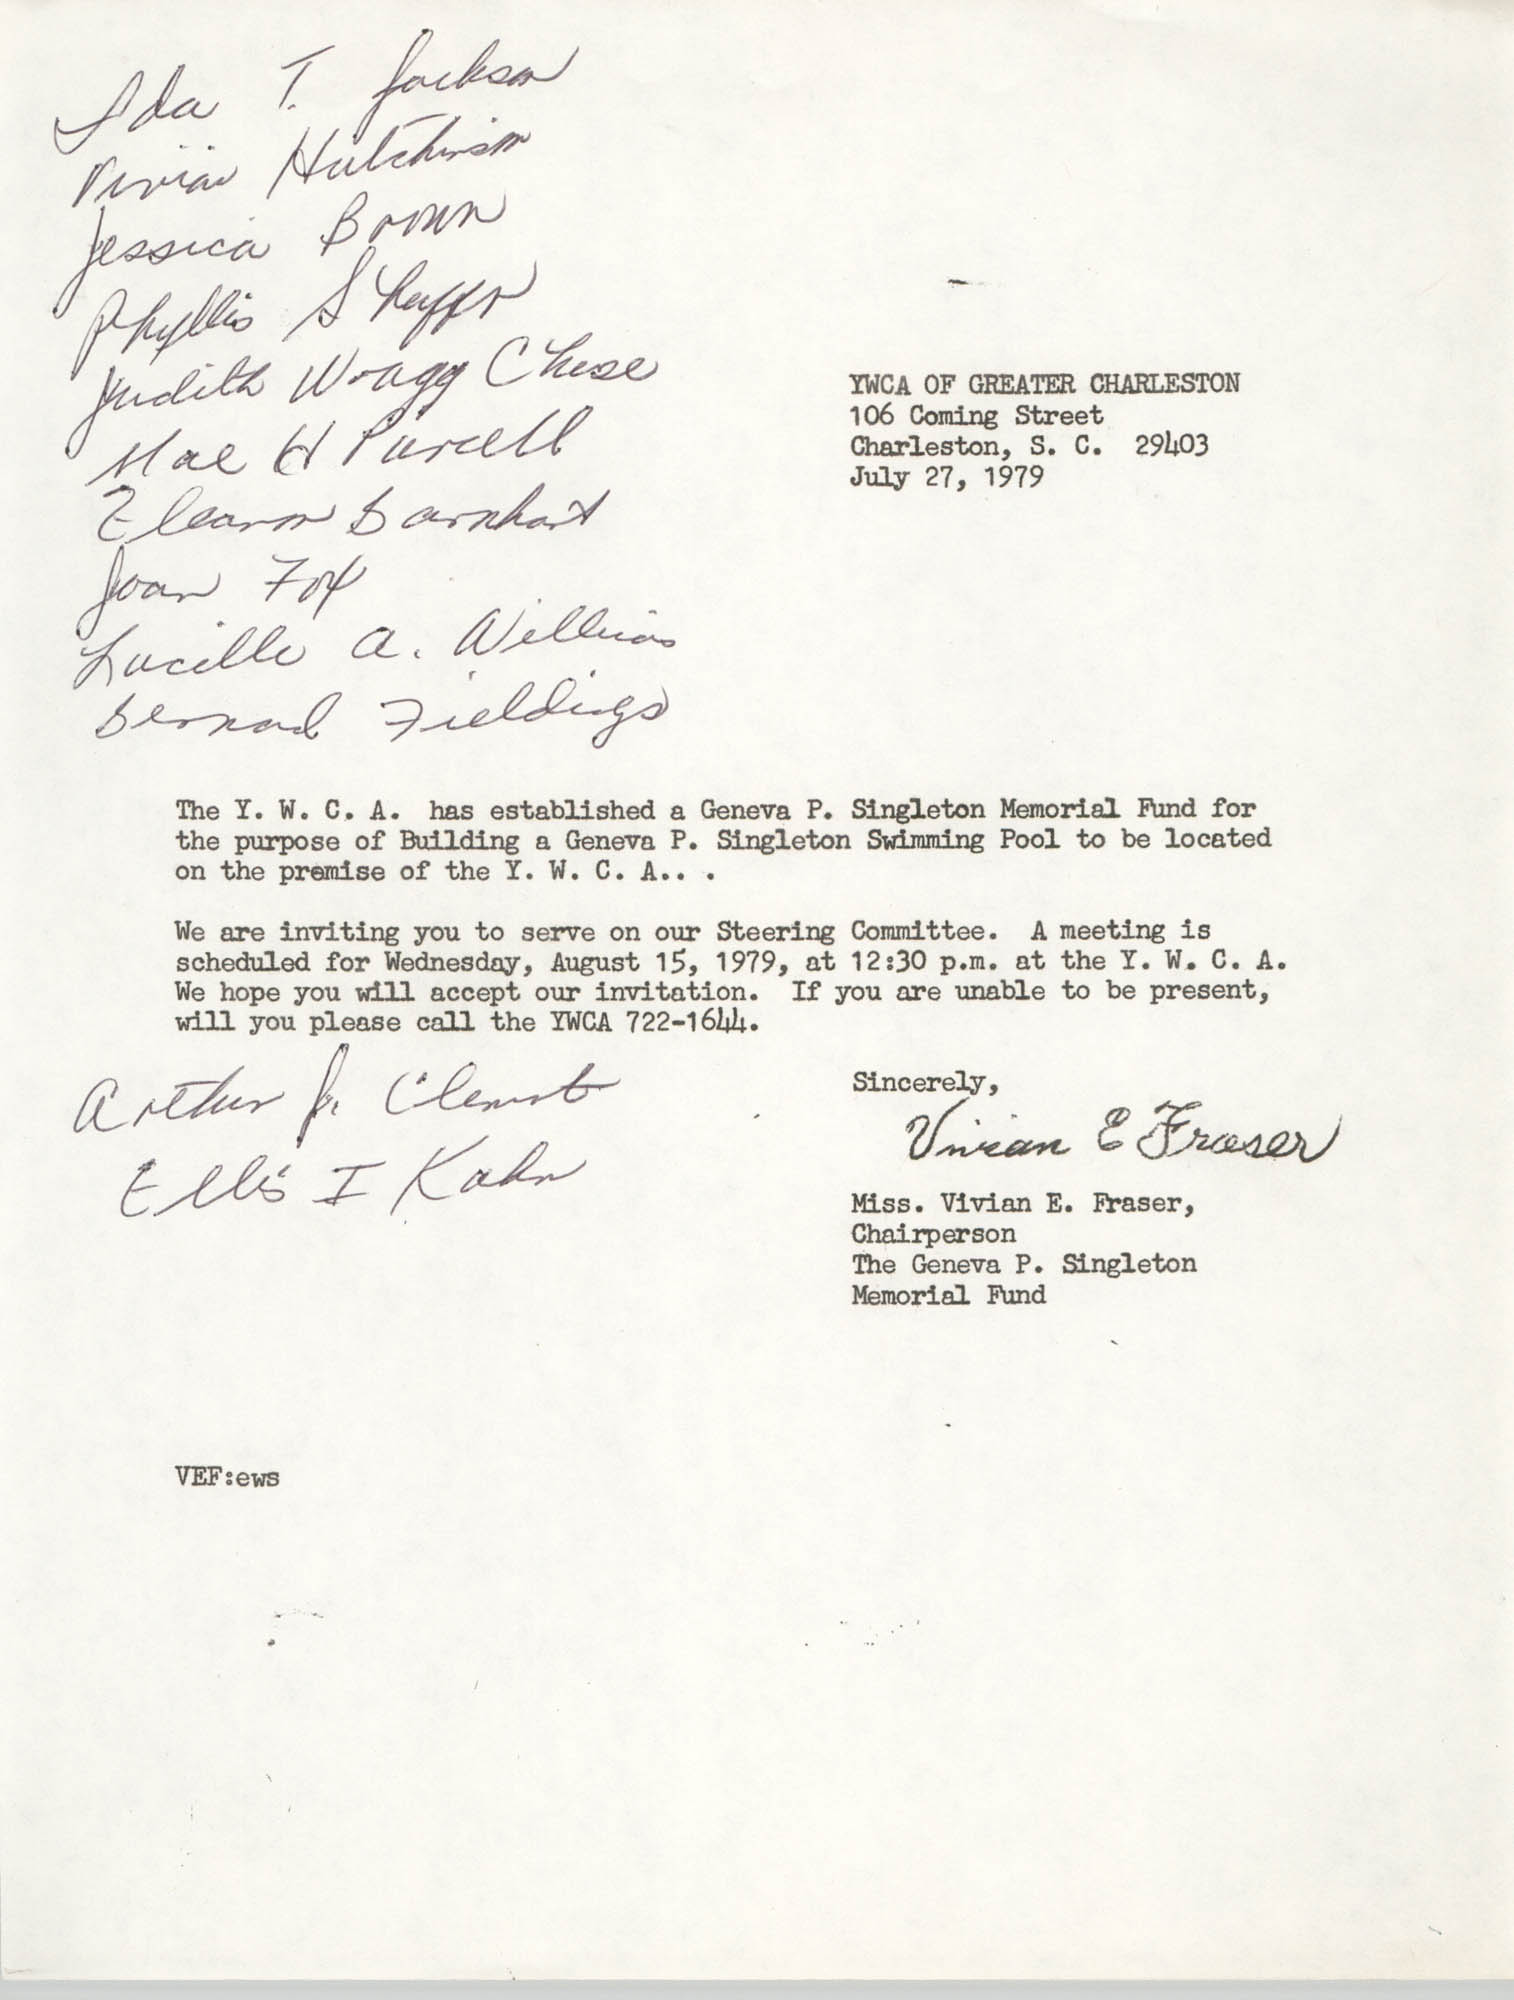 Letter from Vivian E. Frader, July 27, 1979